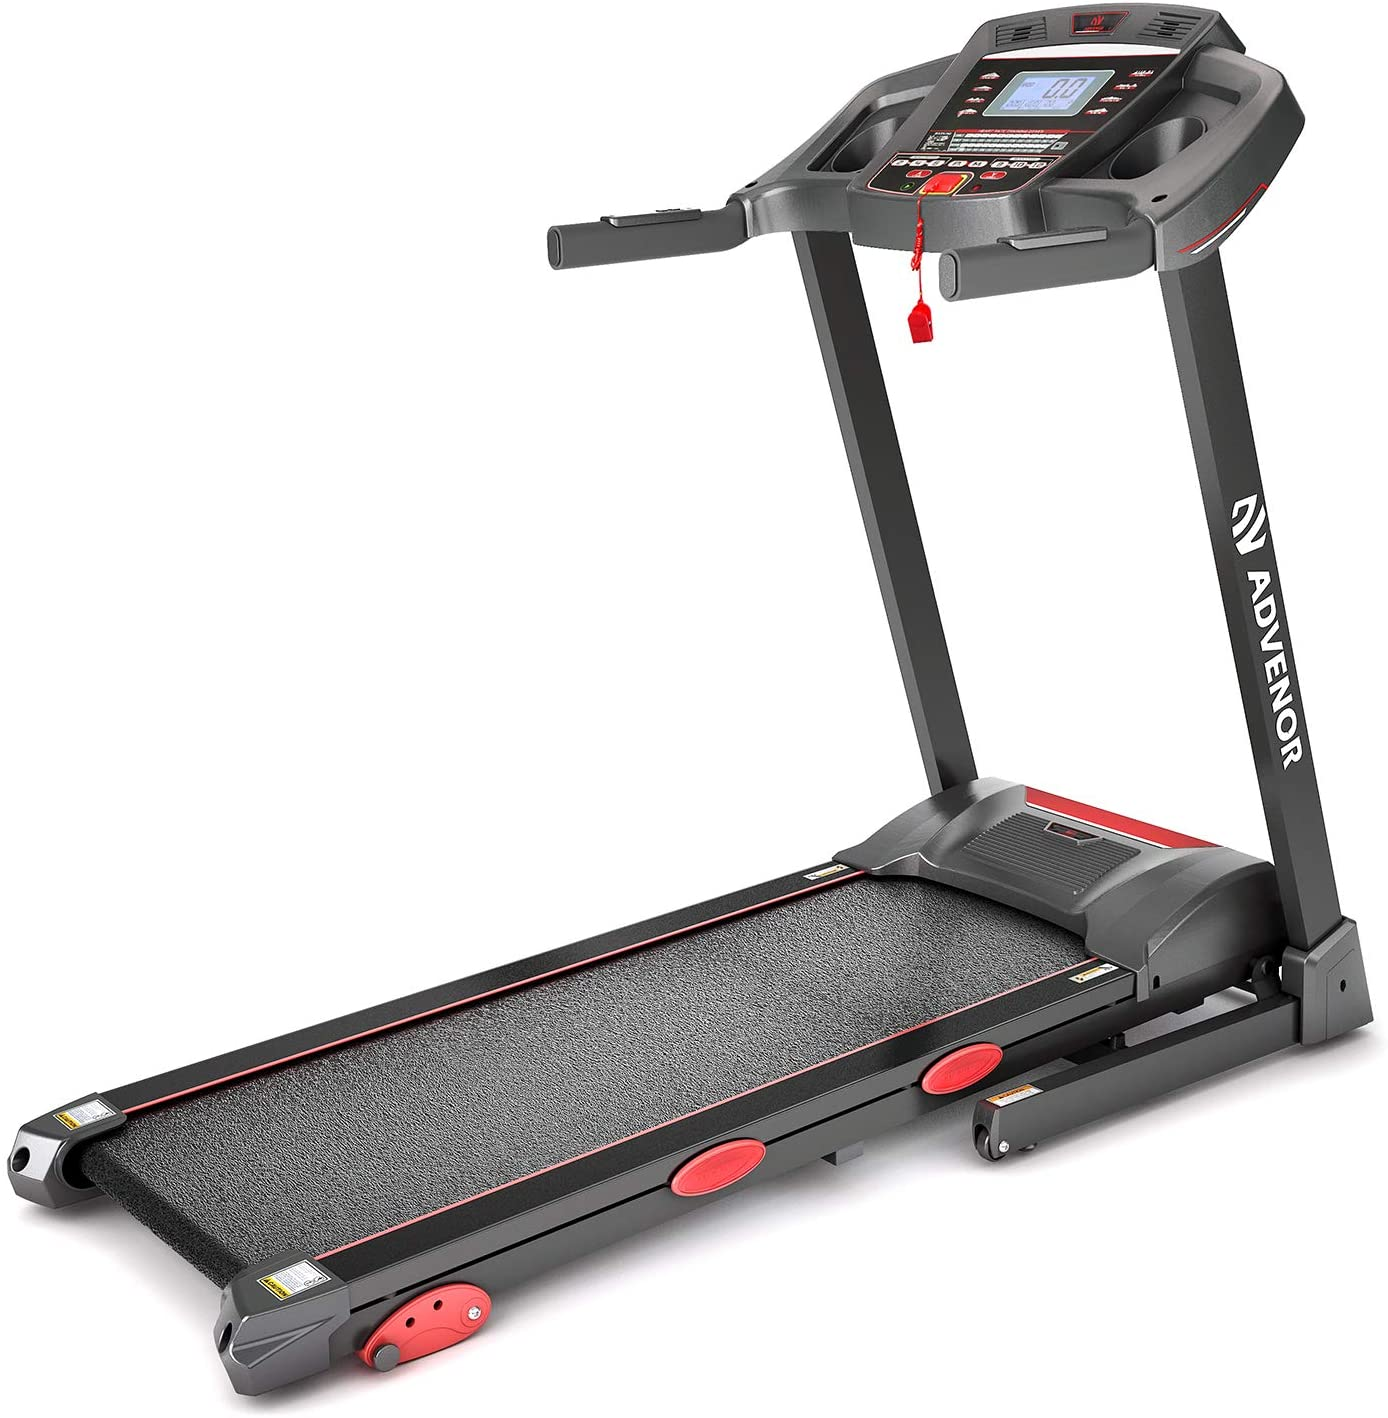 ADVENOR Light-Commercial Treadmill